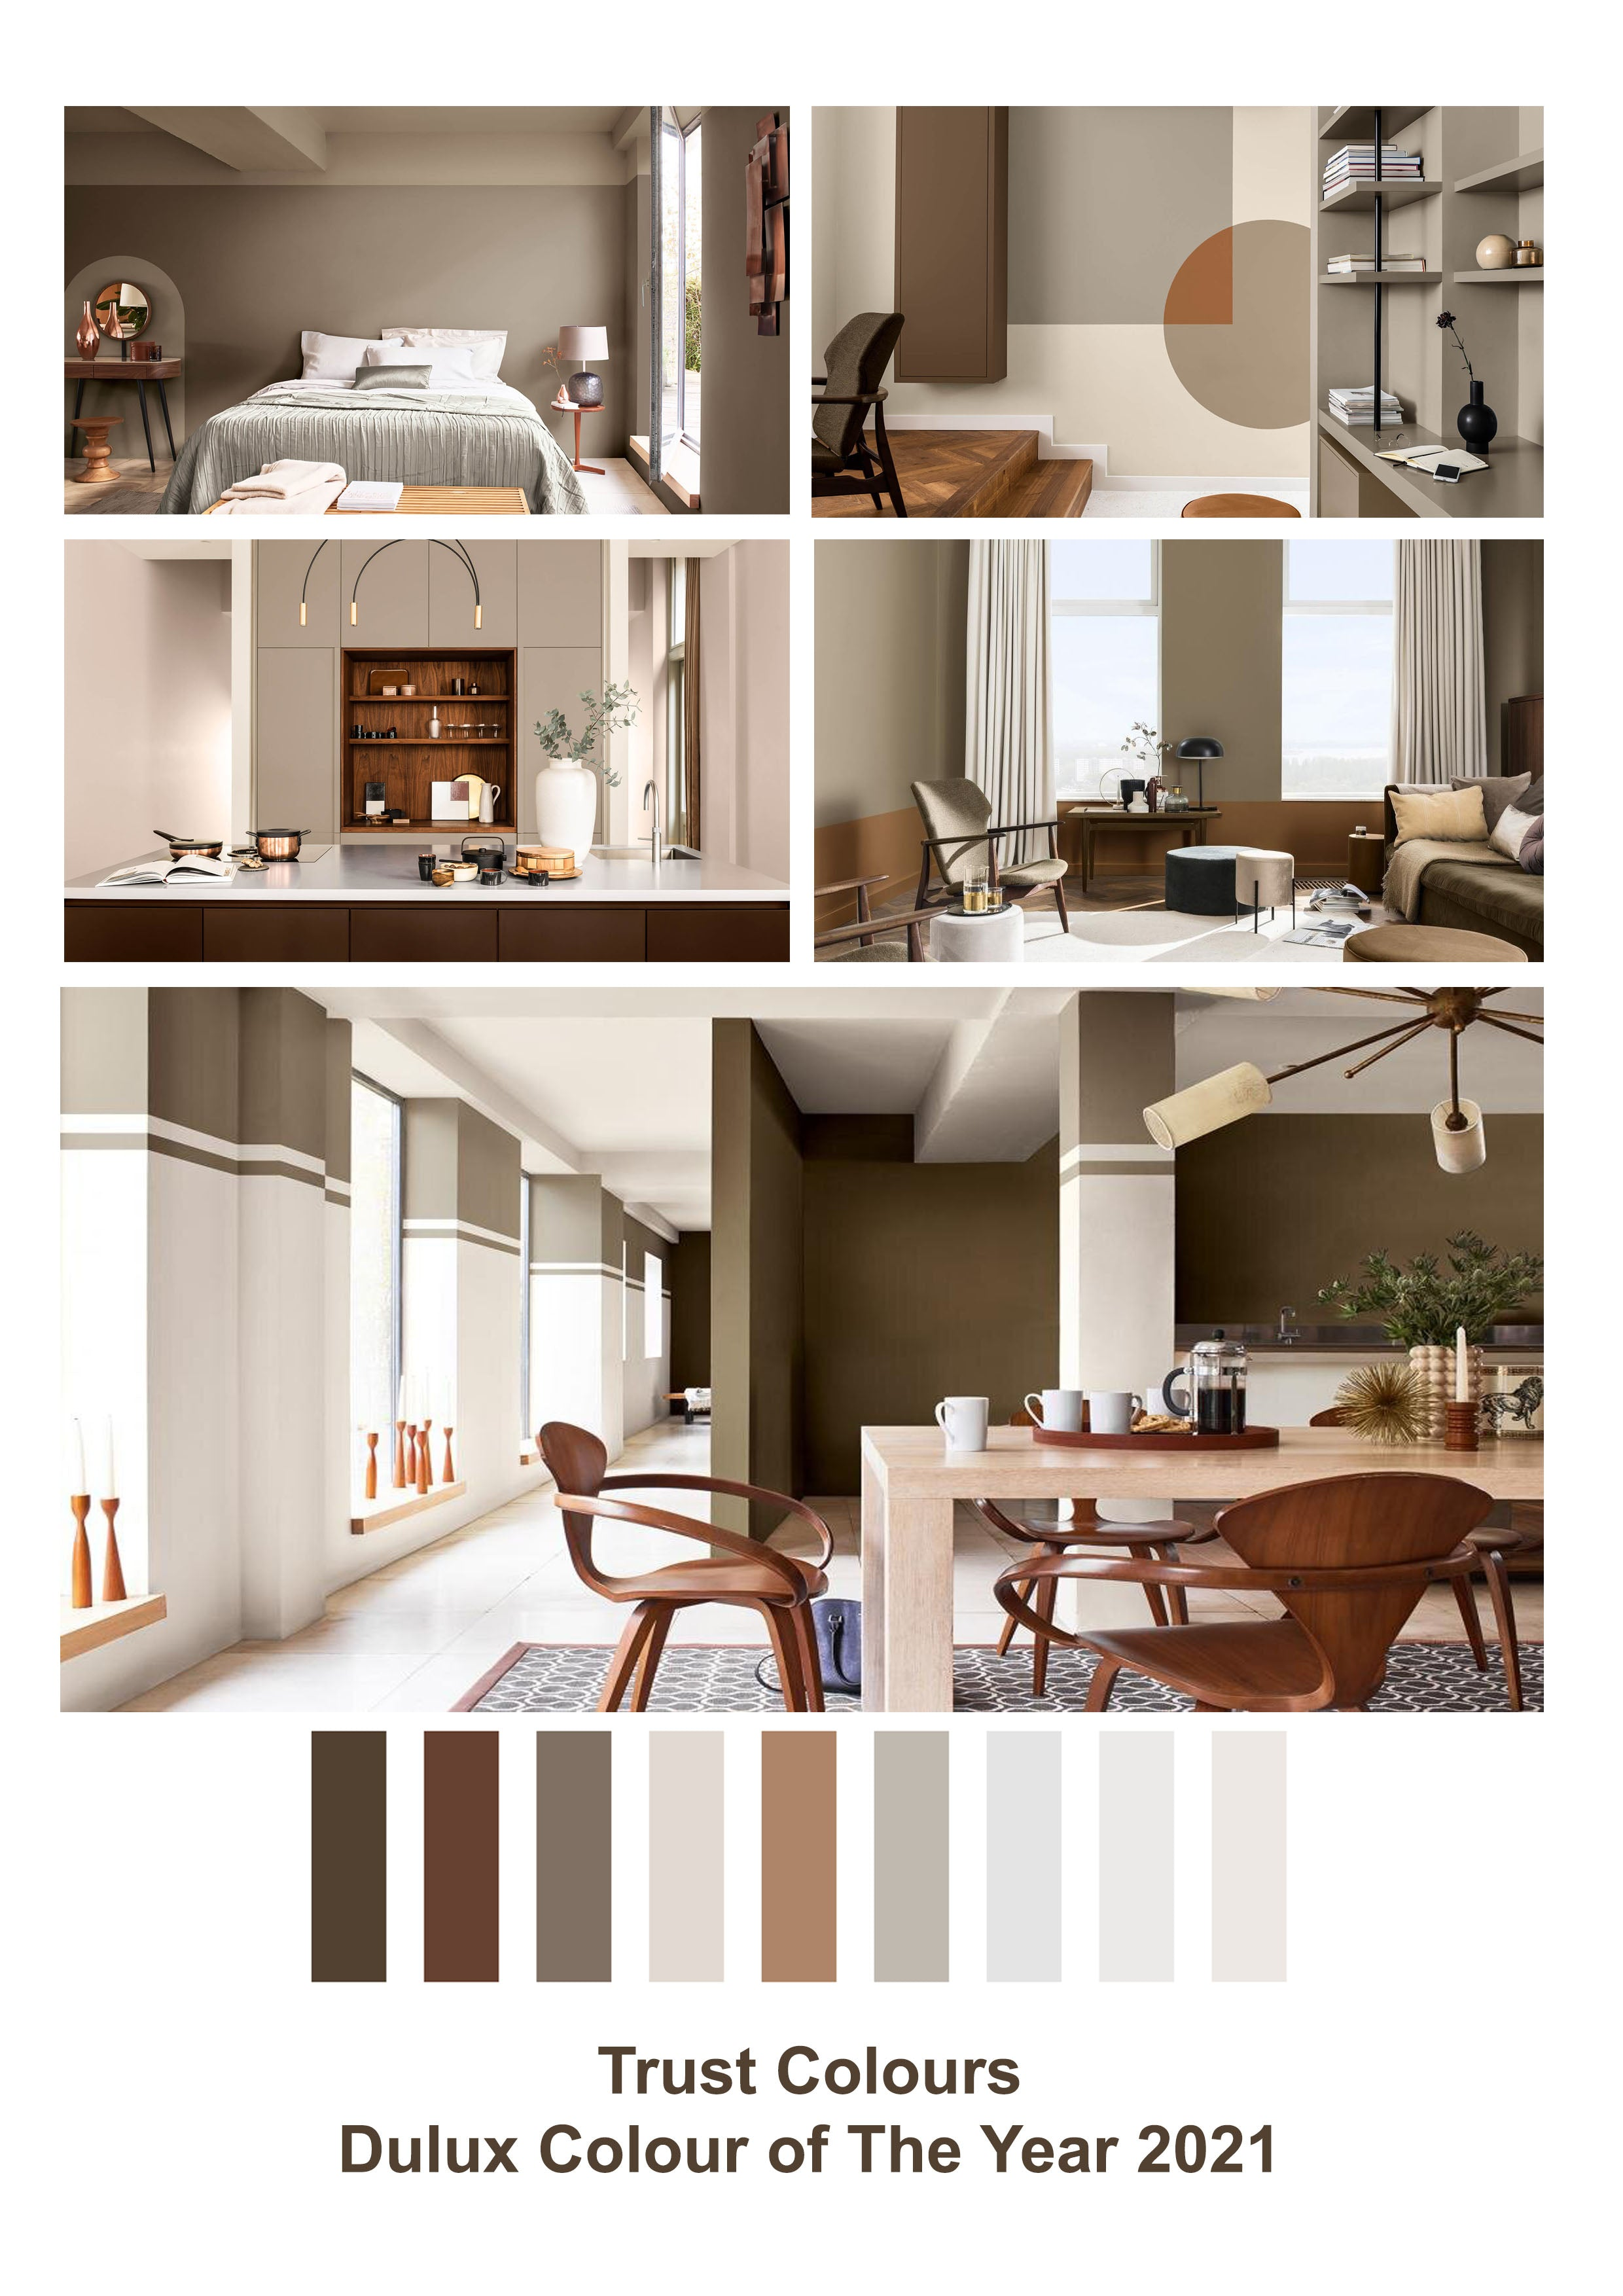 Trust Colours Dulux Colour of the Year 2021